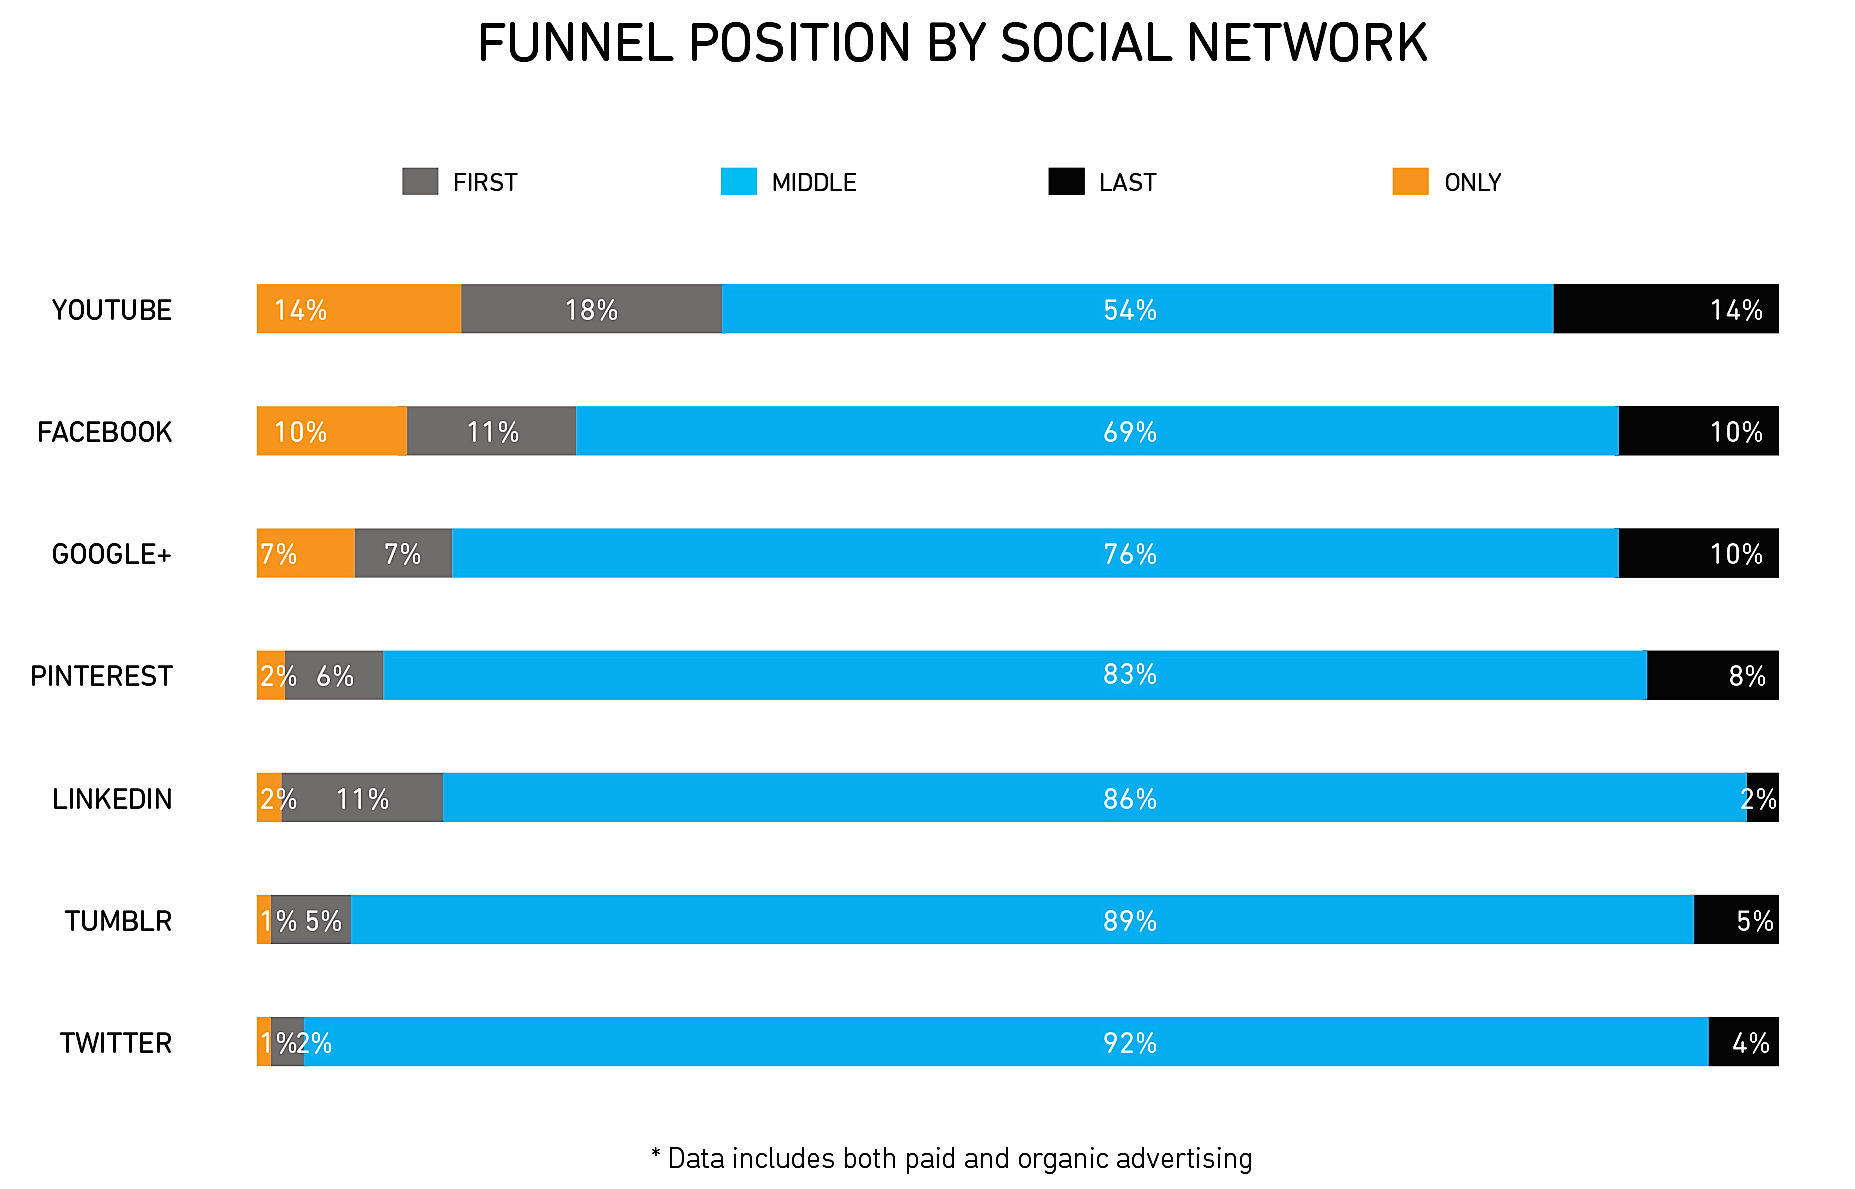 funnel-position-social-network